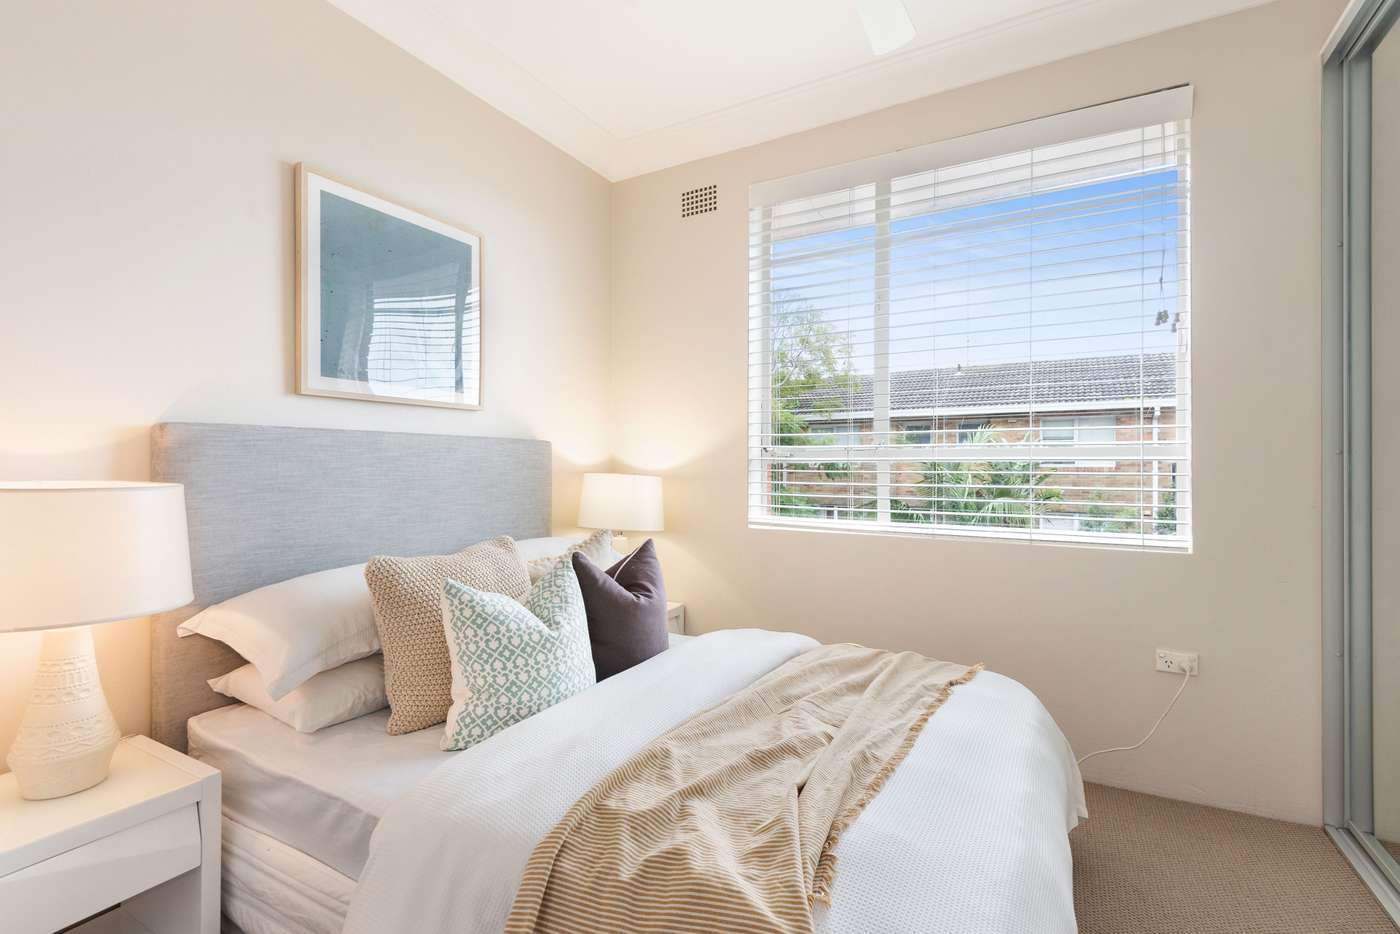 Sixth view of Homely apartment listing, 5/5 Hampden Street, Mosman NSW 2088